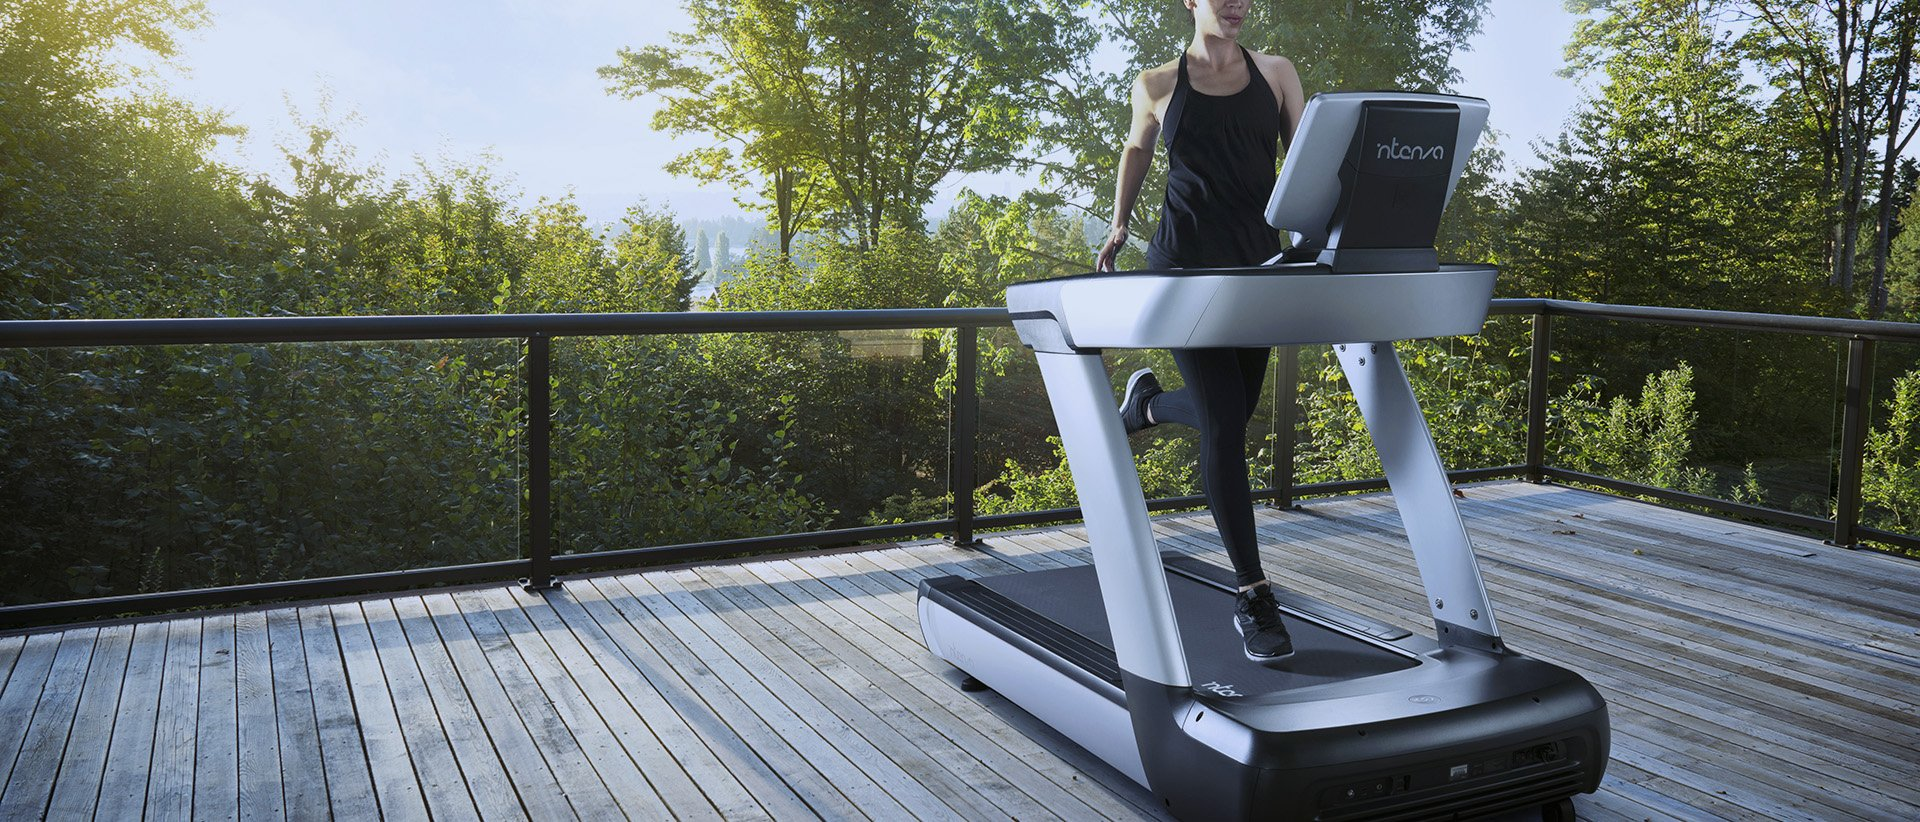 intenza fitness 550 series